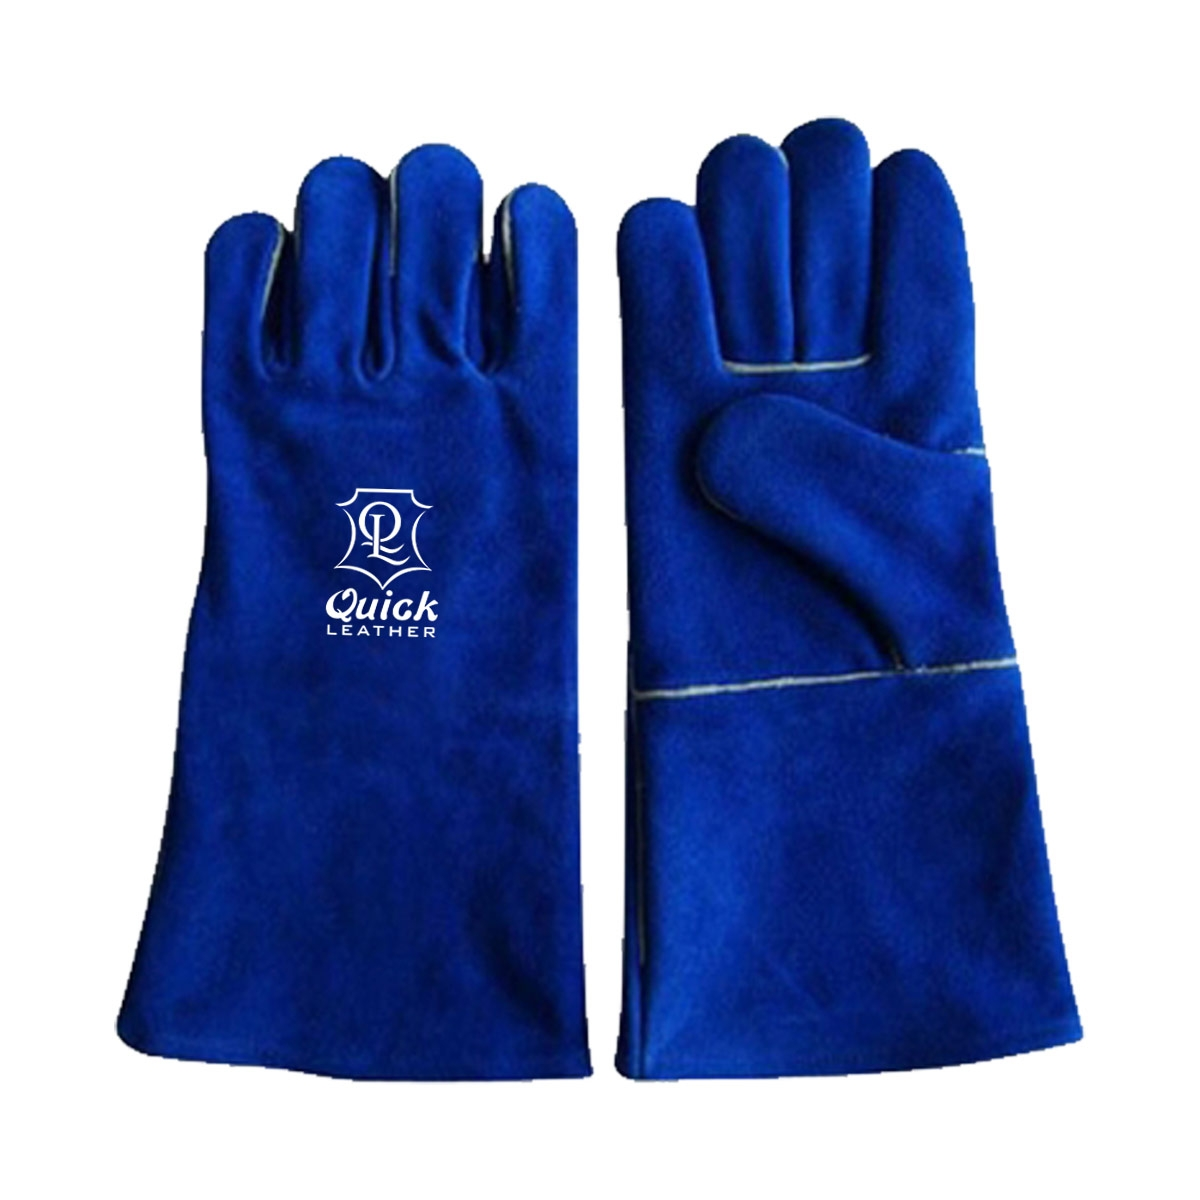 Welding gloves are excellent for use when welding in dry and oily conditions QL 208